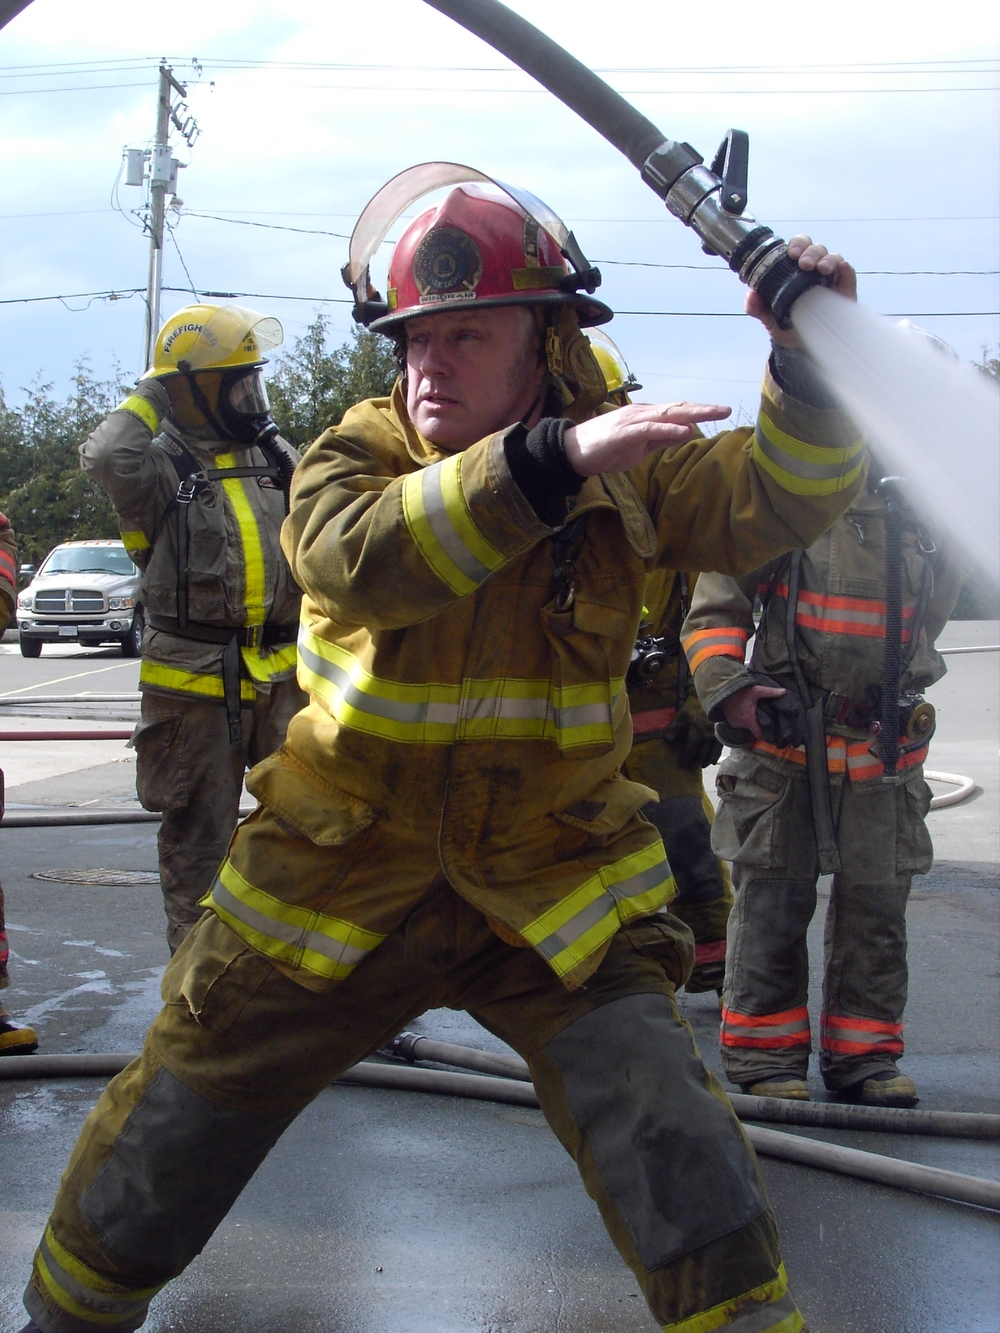 Captain Windram demonstrating some advanced hose handling!